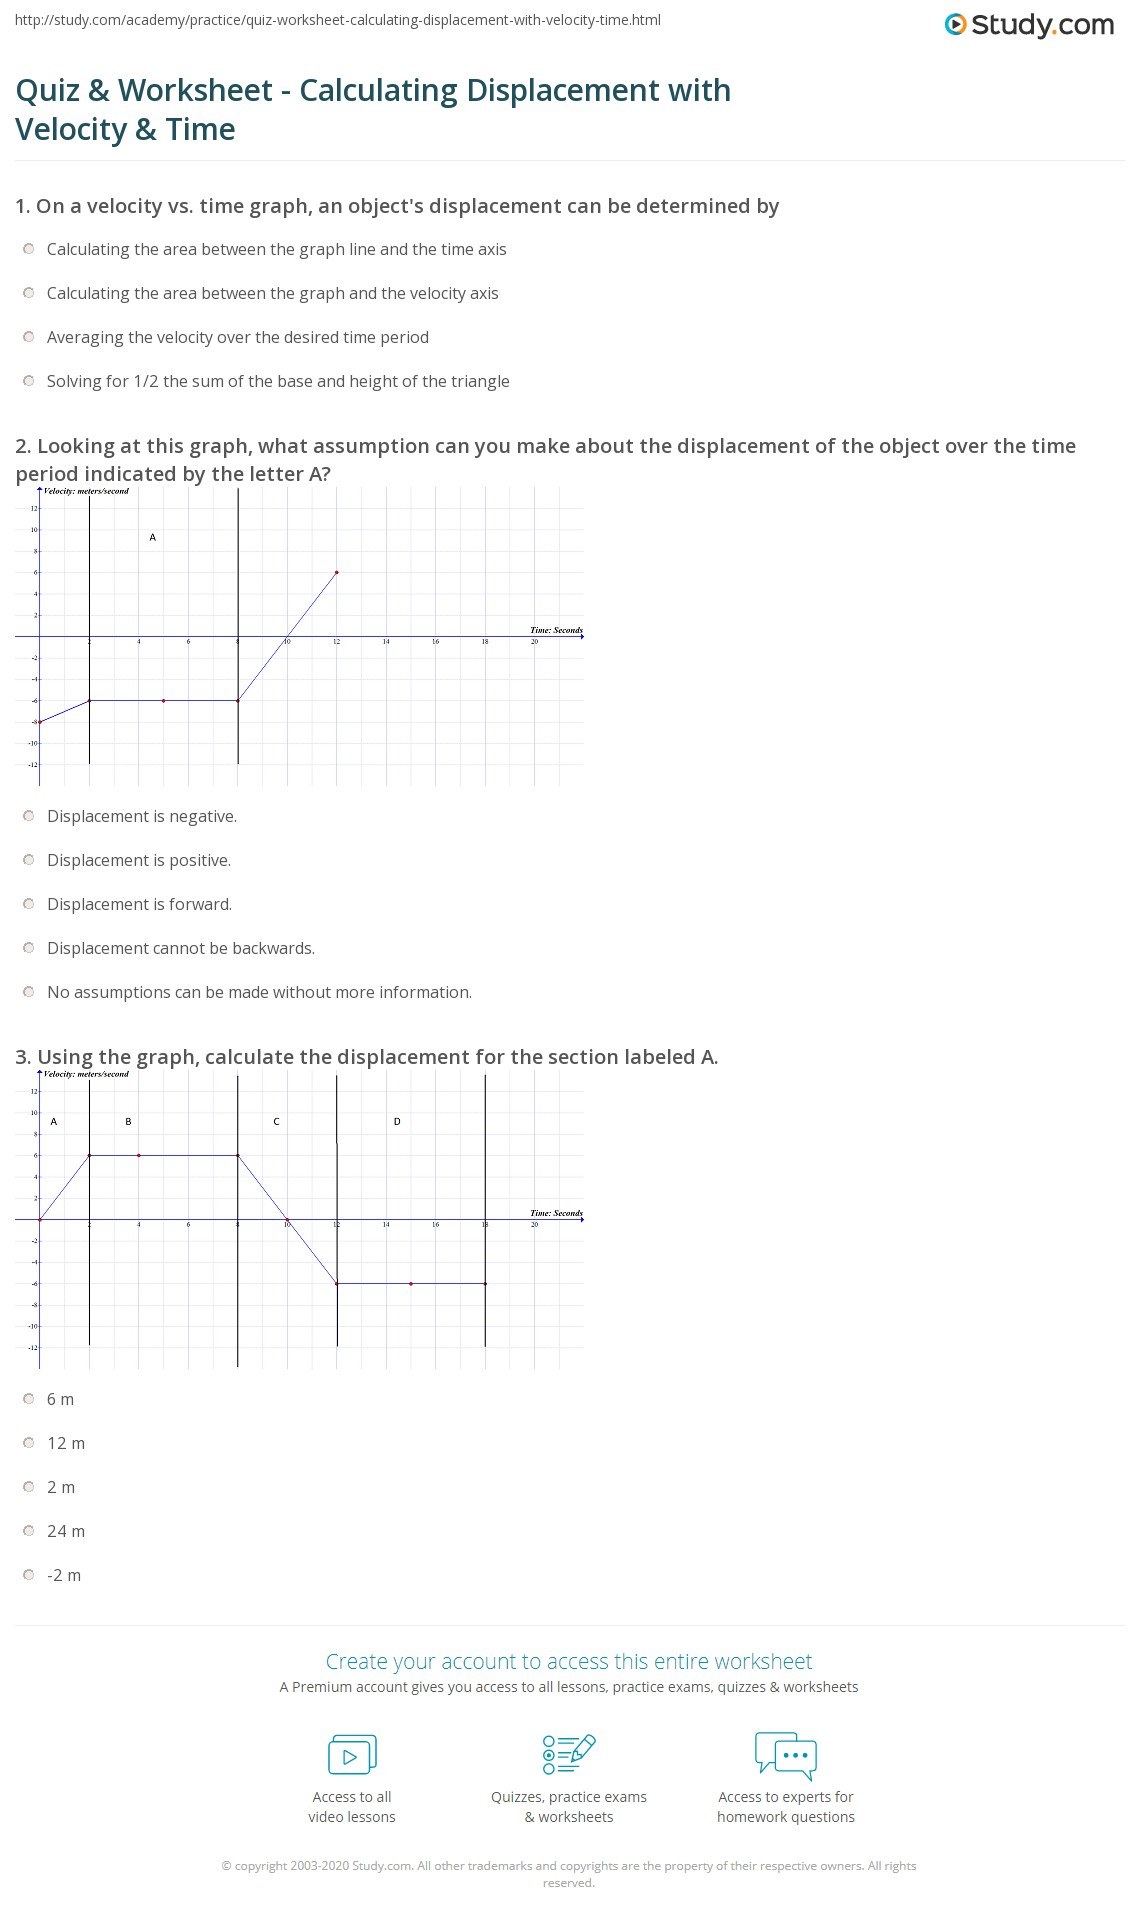 Worksheets Distance And Displacement Worksheet With Answers quiz worksheet calculating displacement with velocity time determining of an object worksheet